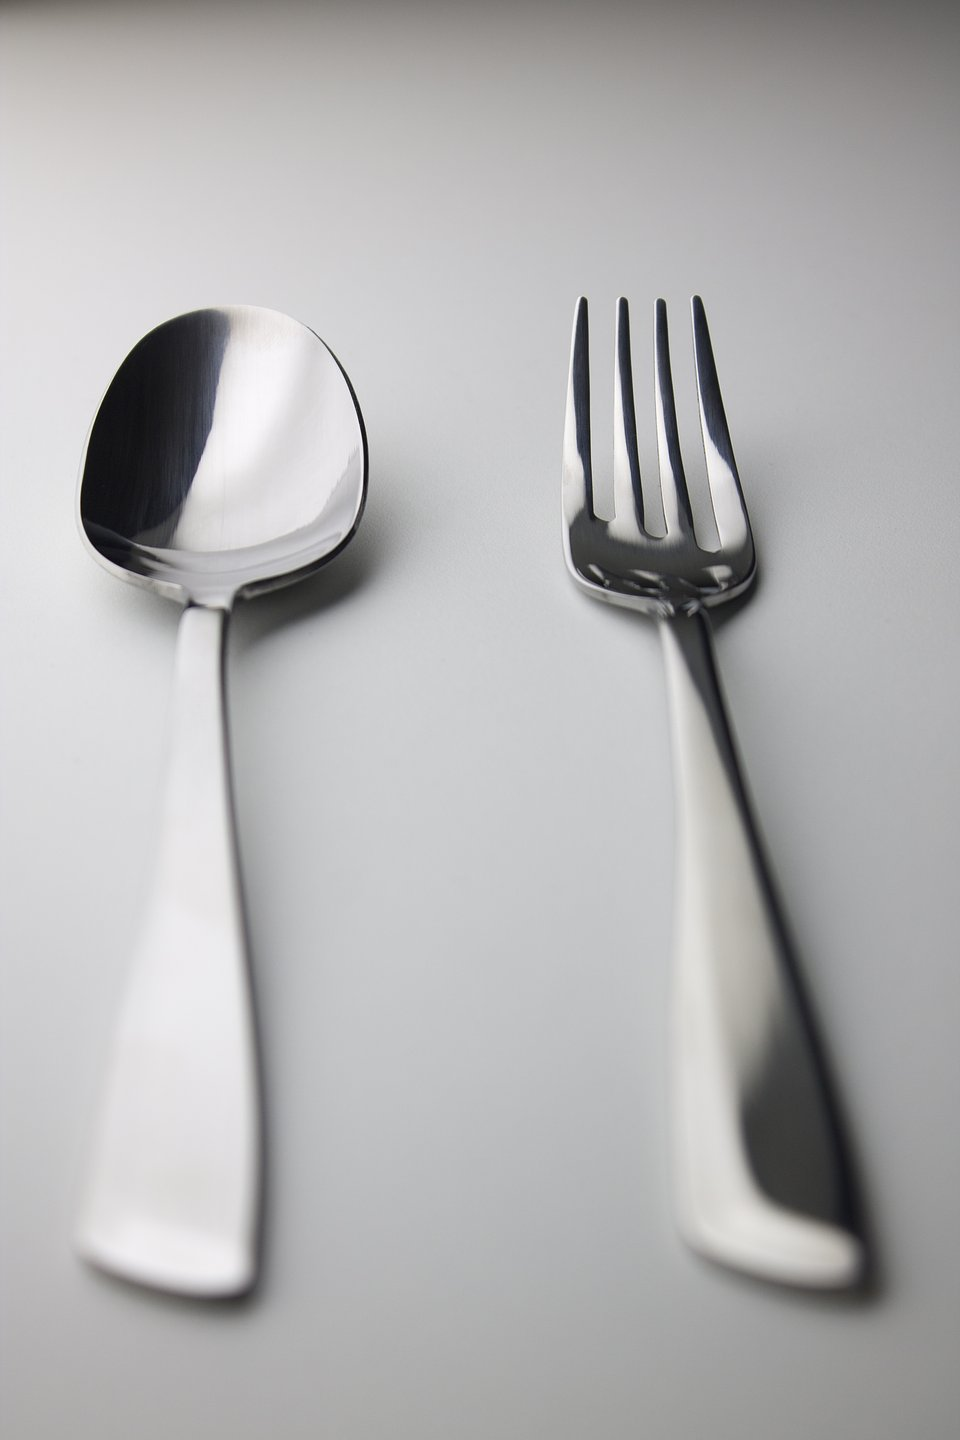 Fusain cutlery for Lebrun (1).jpg